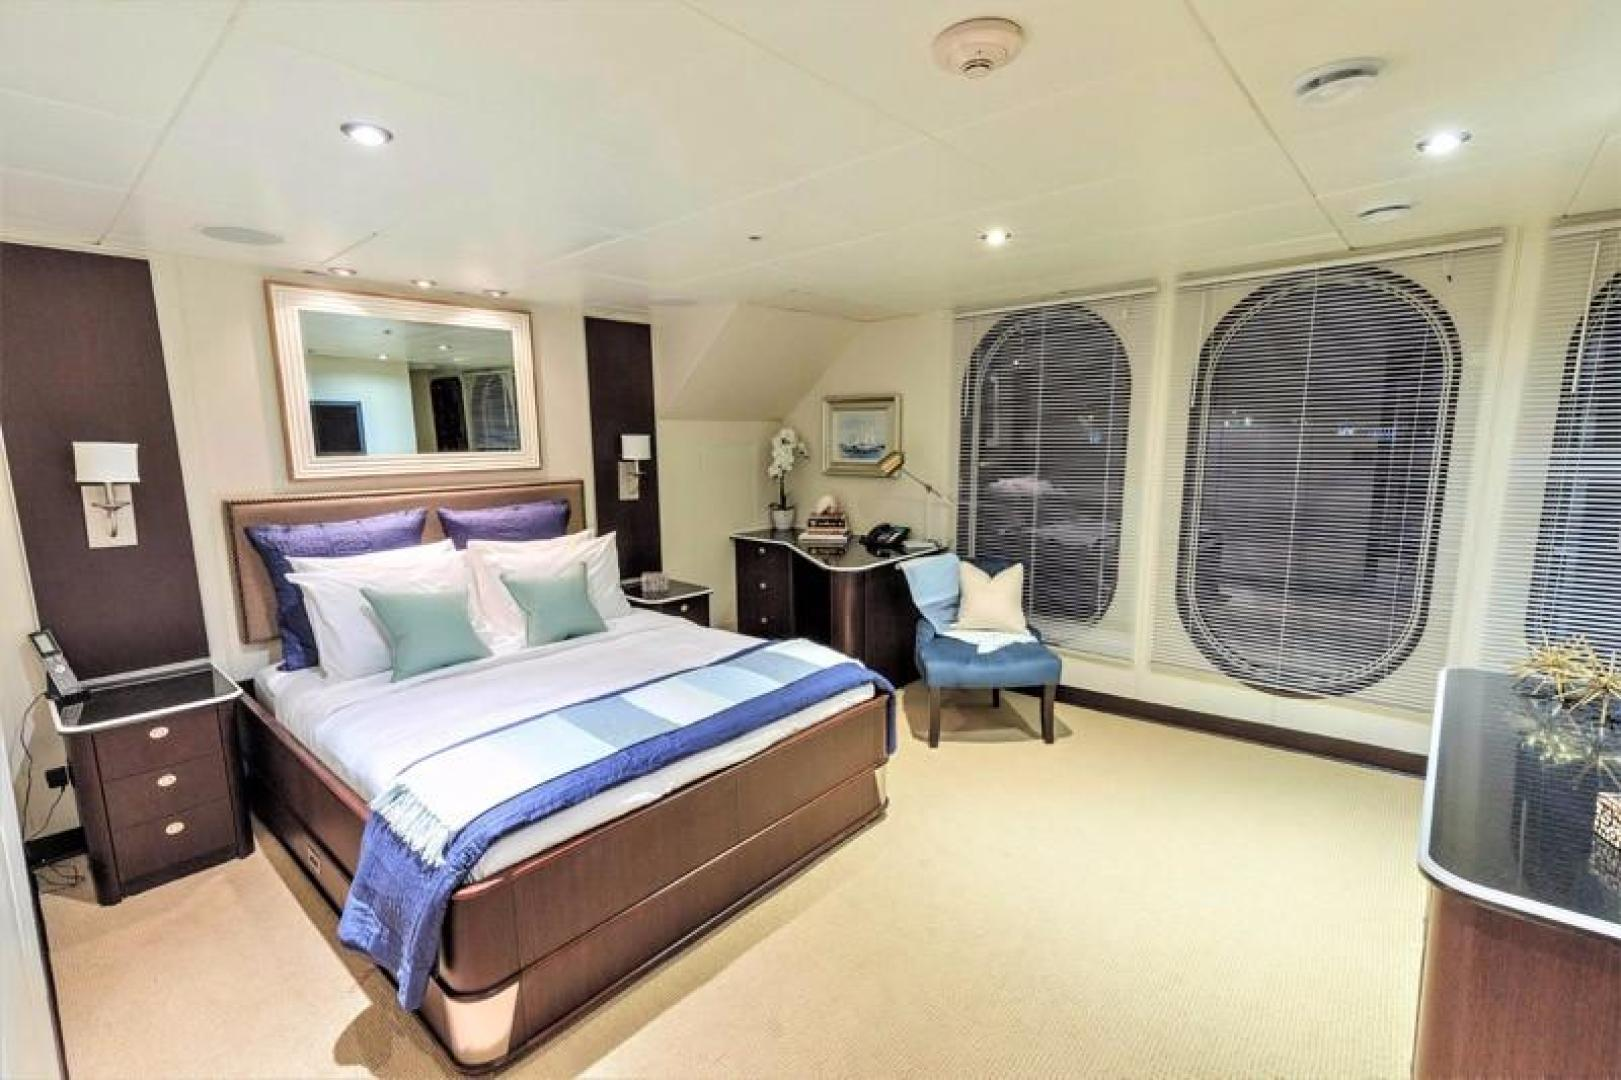 Shadow-Marine Expedition Mothership  Allure Class 2007-Global Ft. Lauderdale-Florida-United States-Stateroom-919084 | Thumbnail